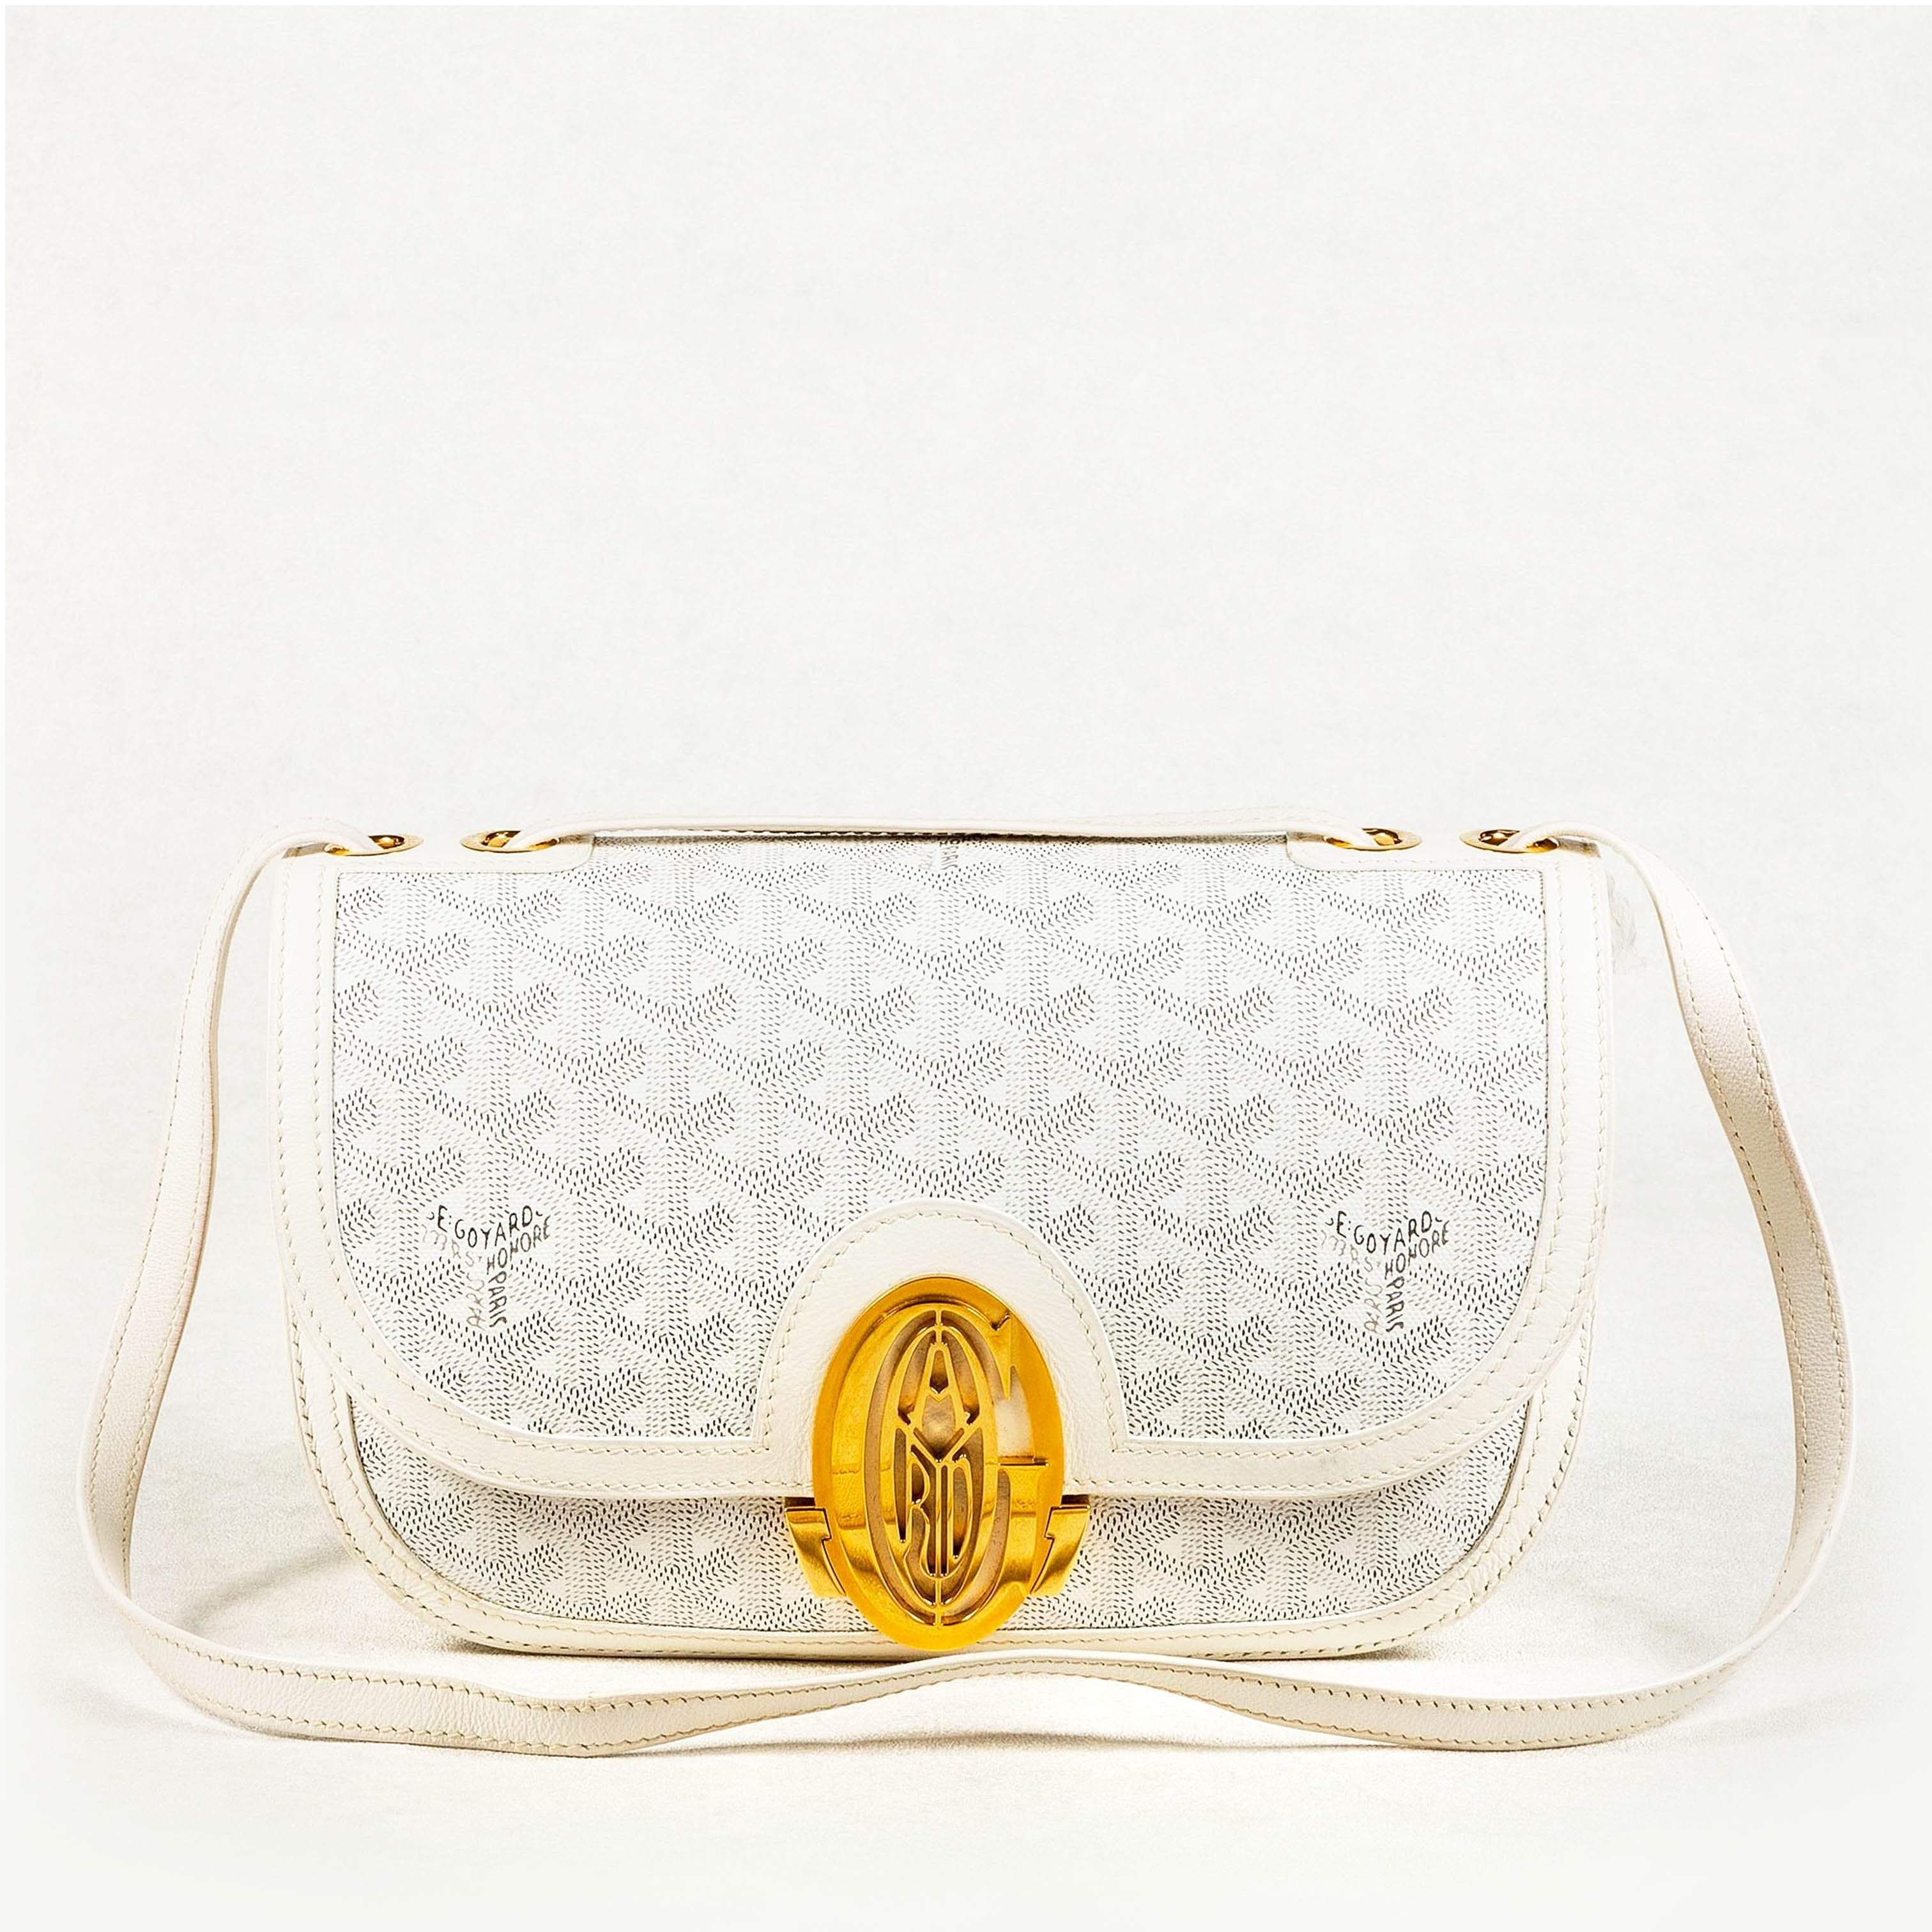 Goyard 233 PM White Leather Shoulder Bag